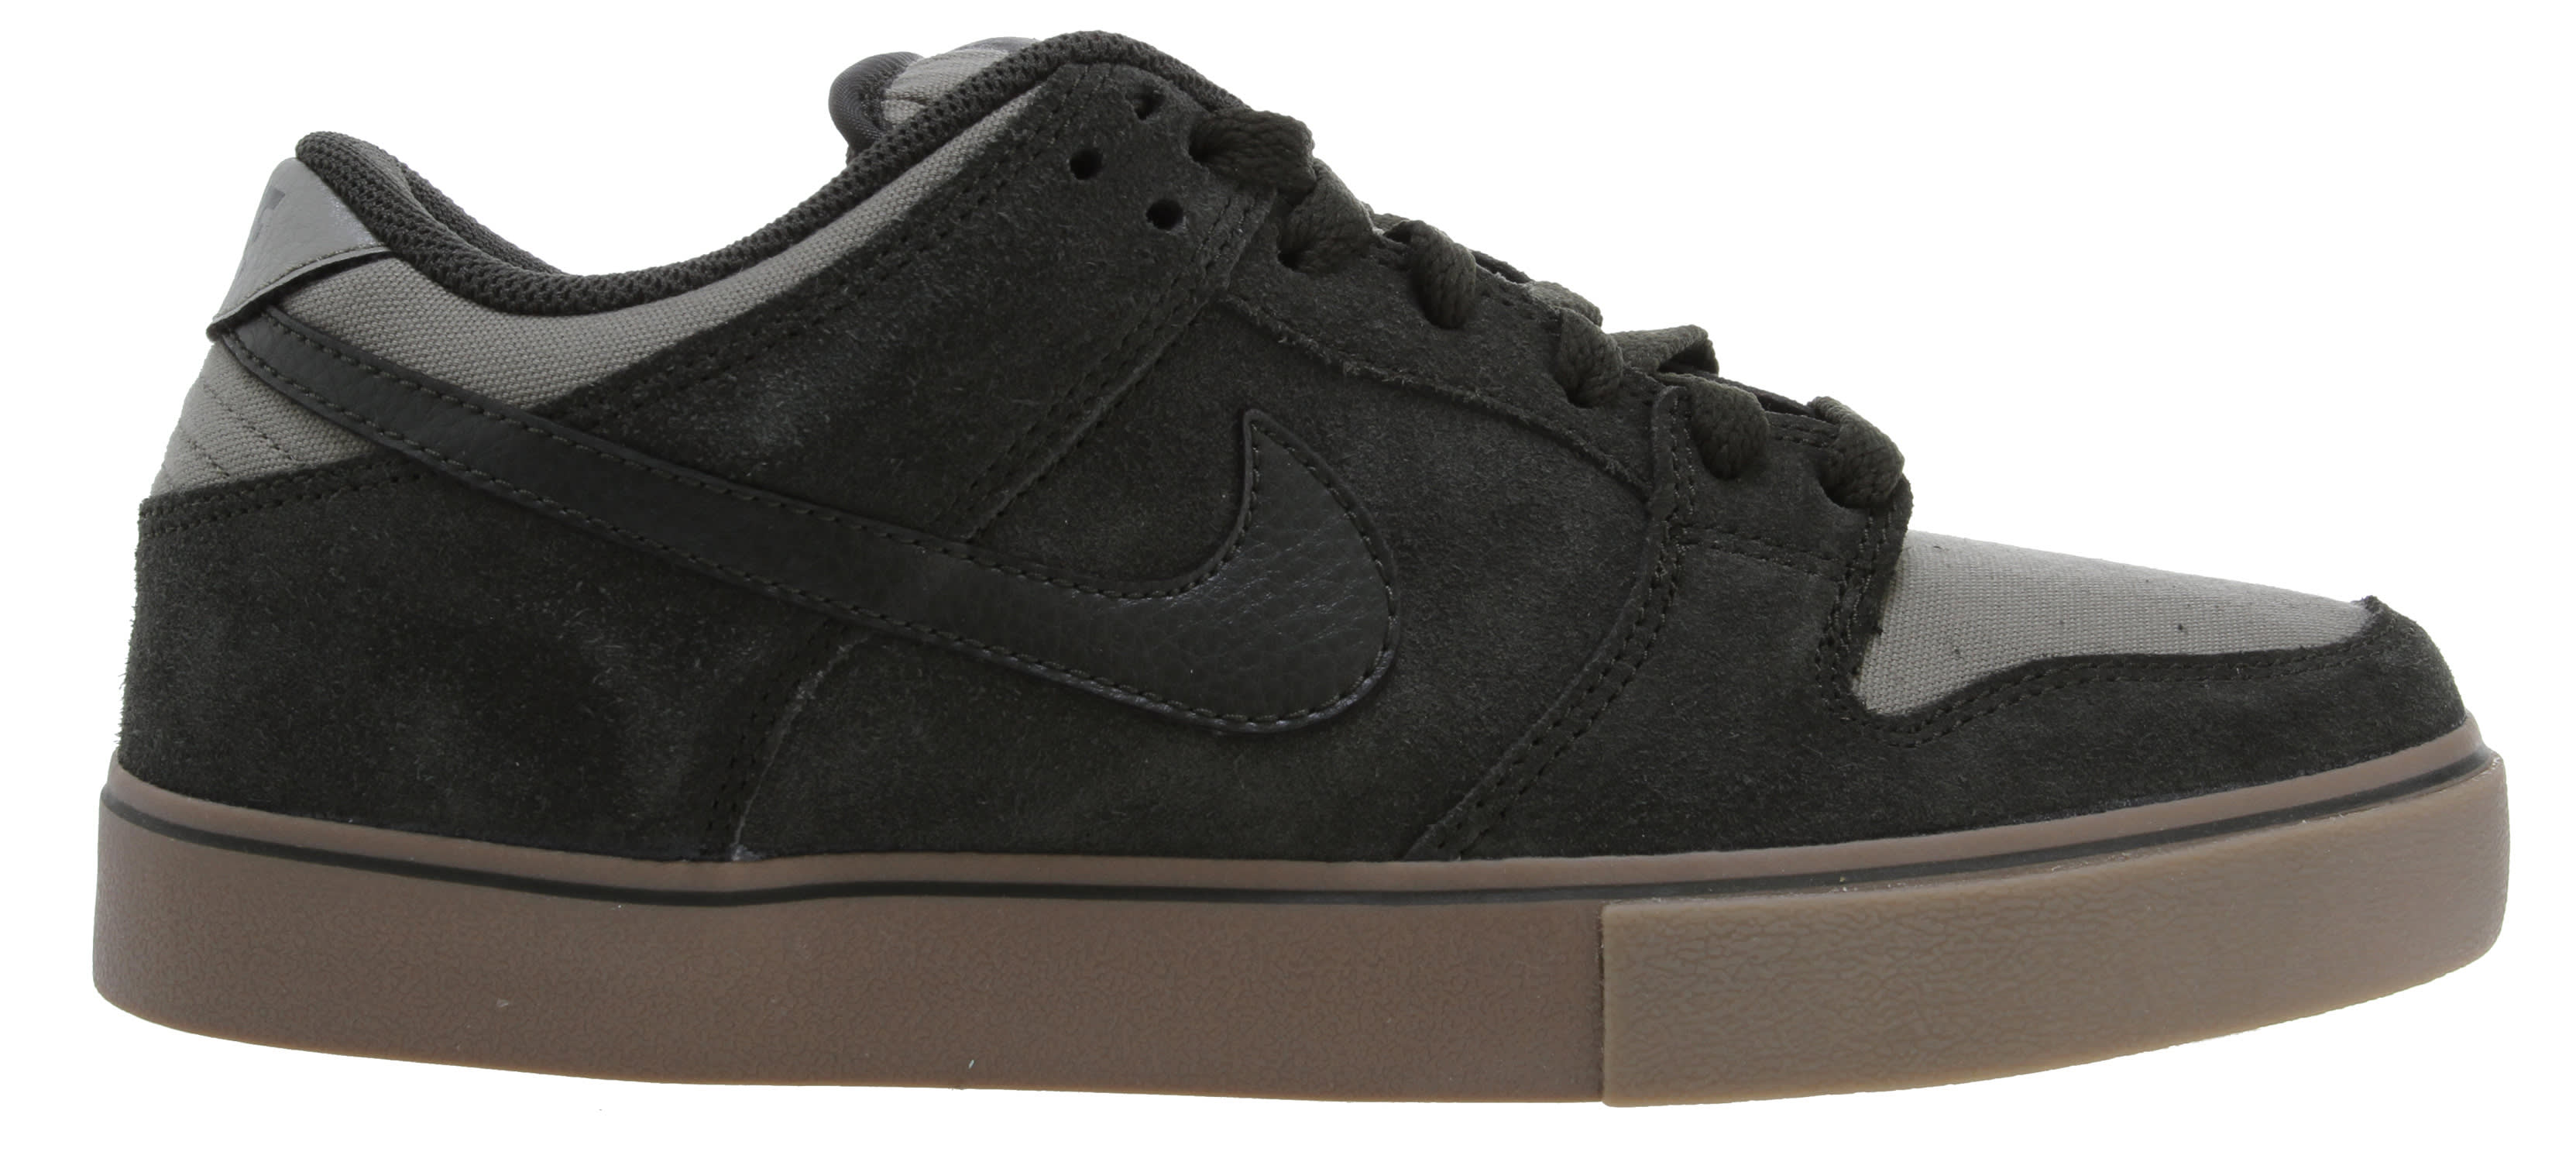 hot sales 76fc1 bd0a2 Nike Dunk Low LR Skate Shoes - thumbnail 1